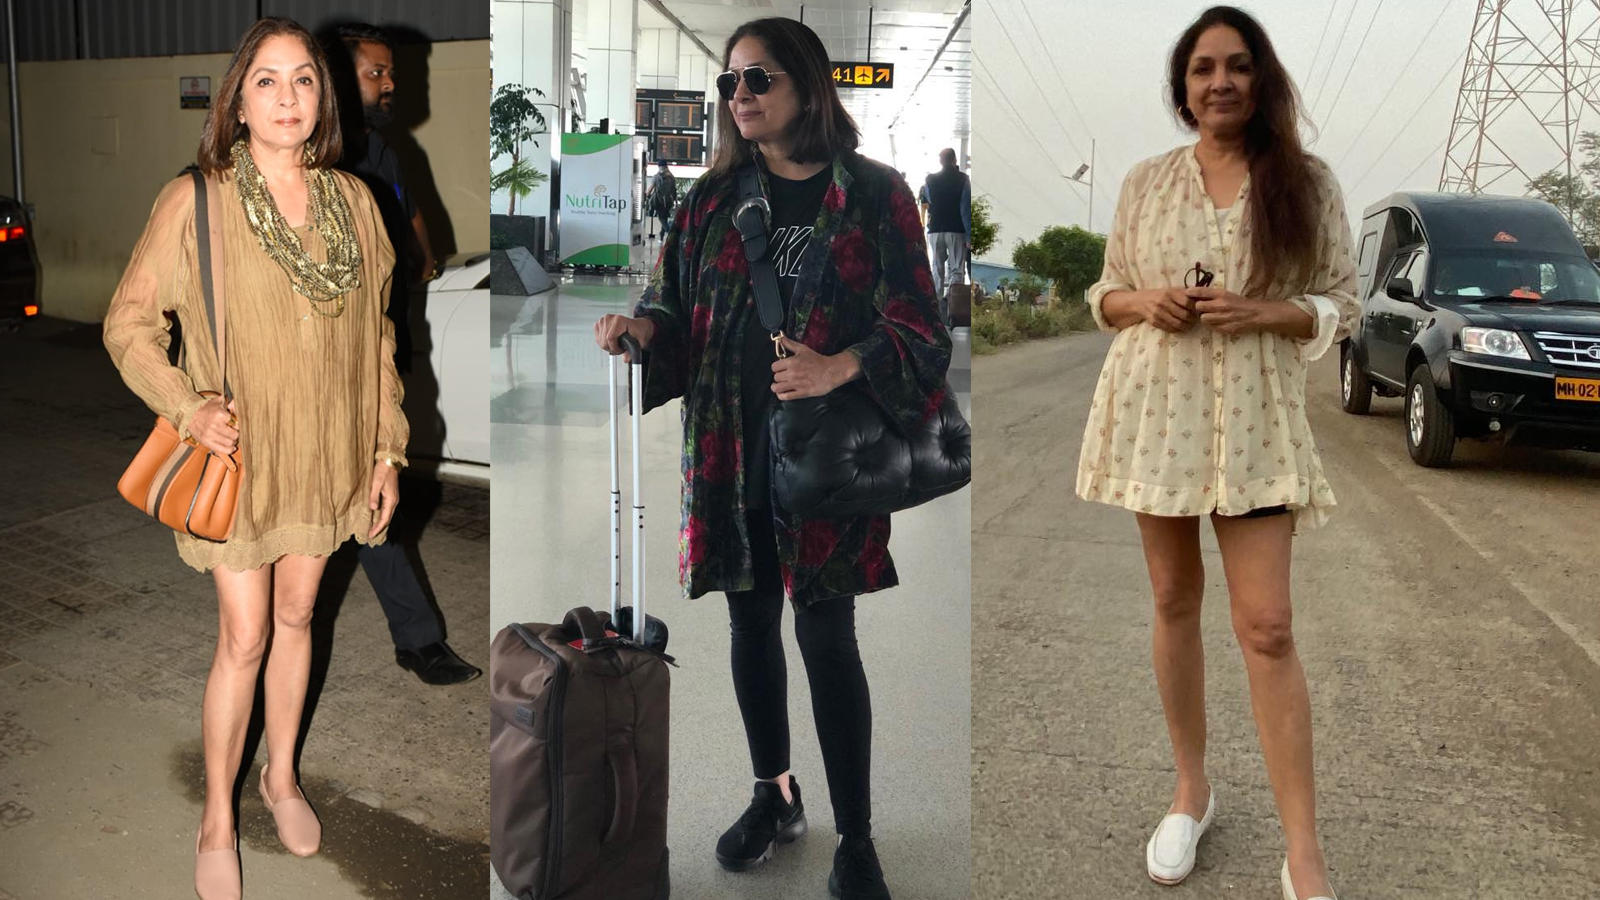 neena-gupta-ditches-short-dresses-says-chalo-no-frock-for-sometime